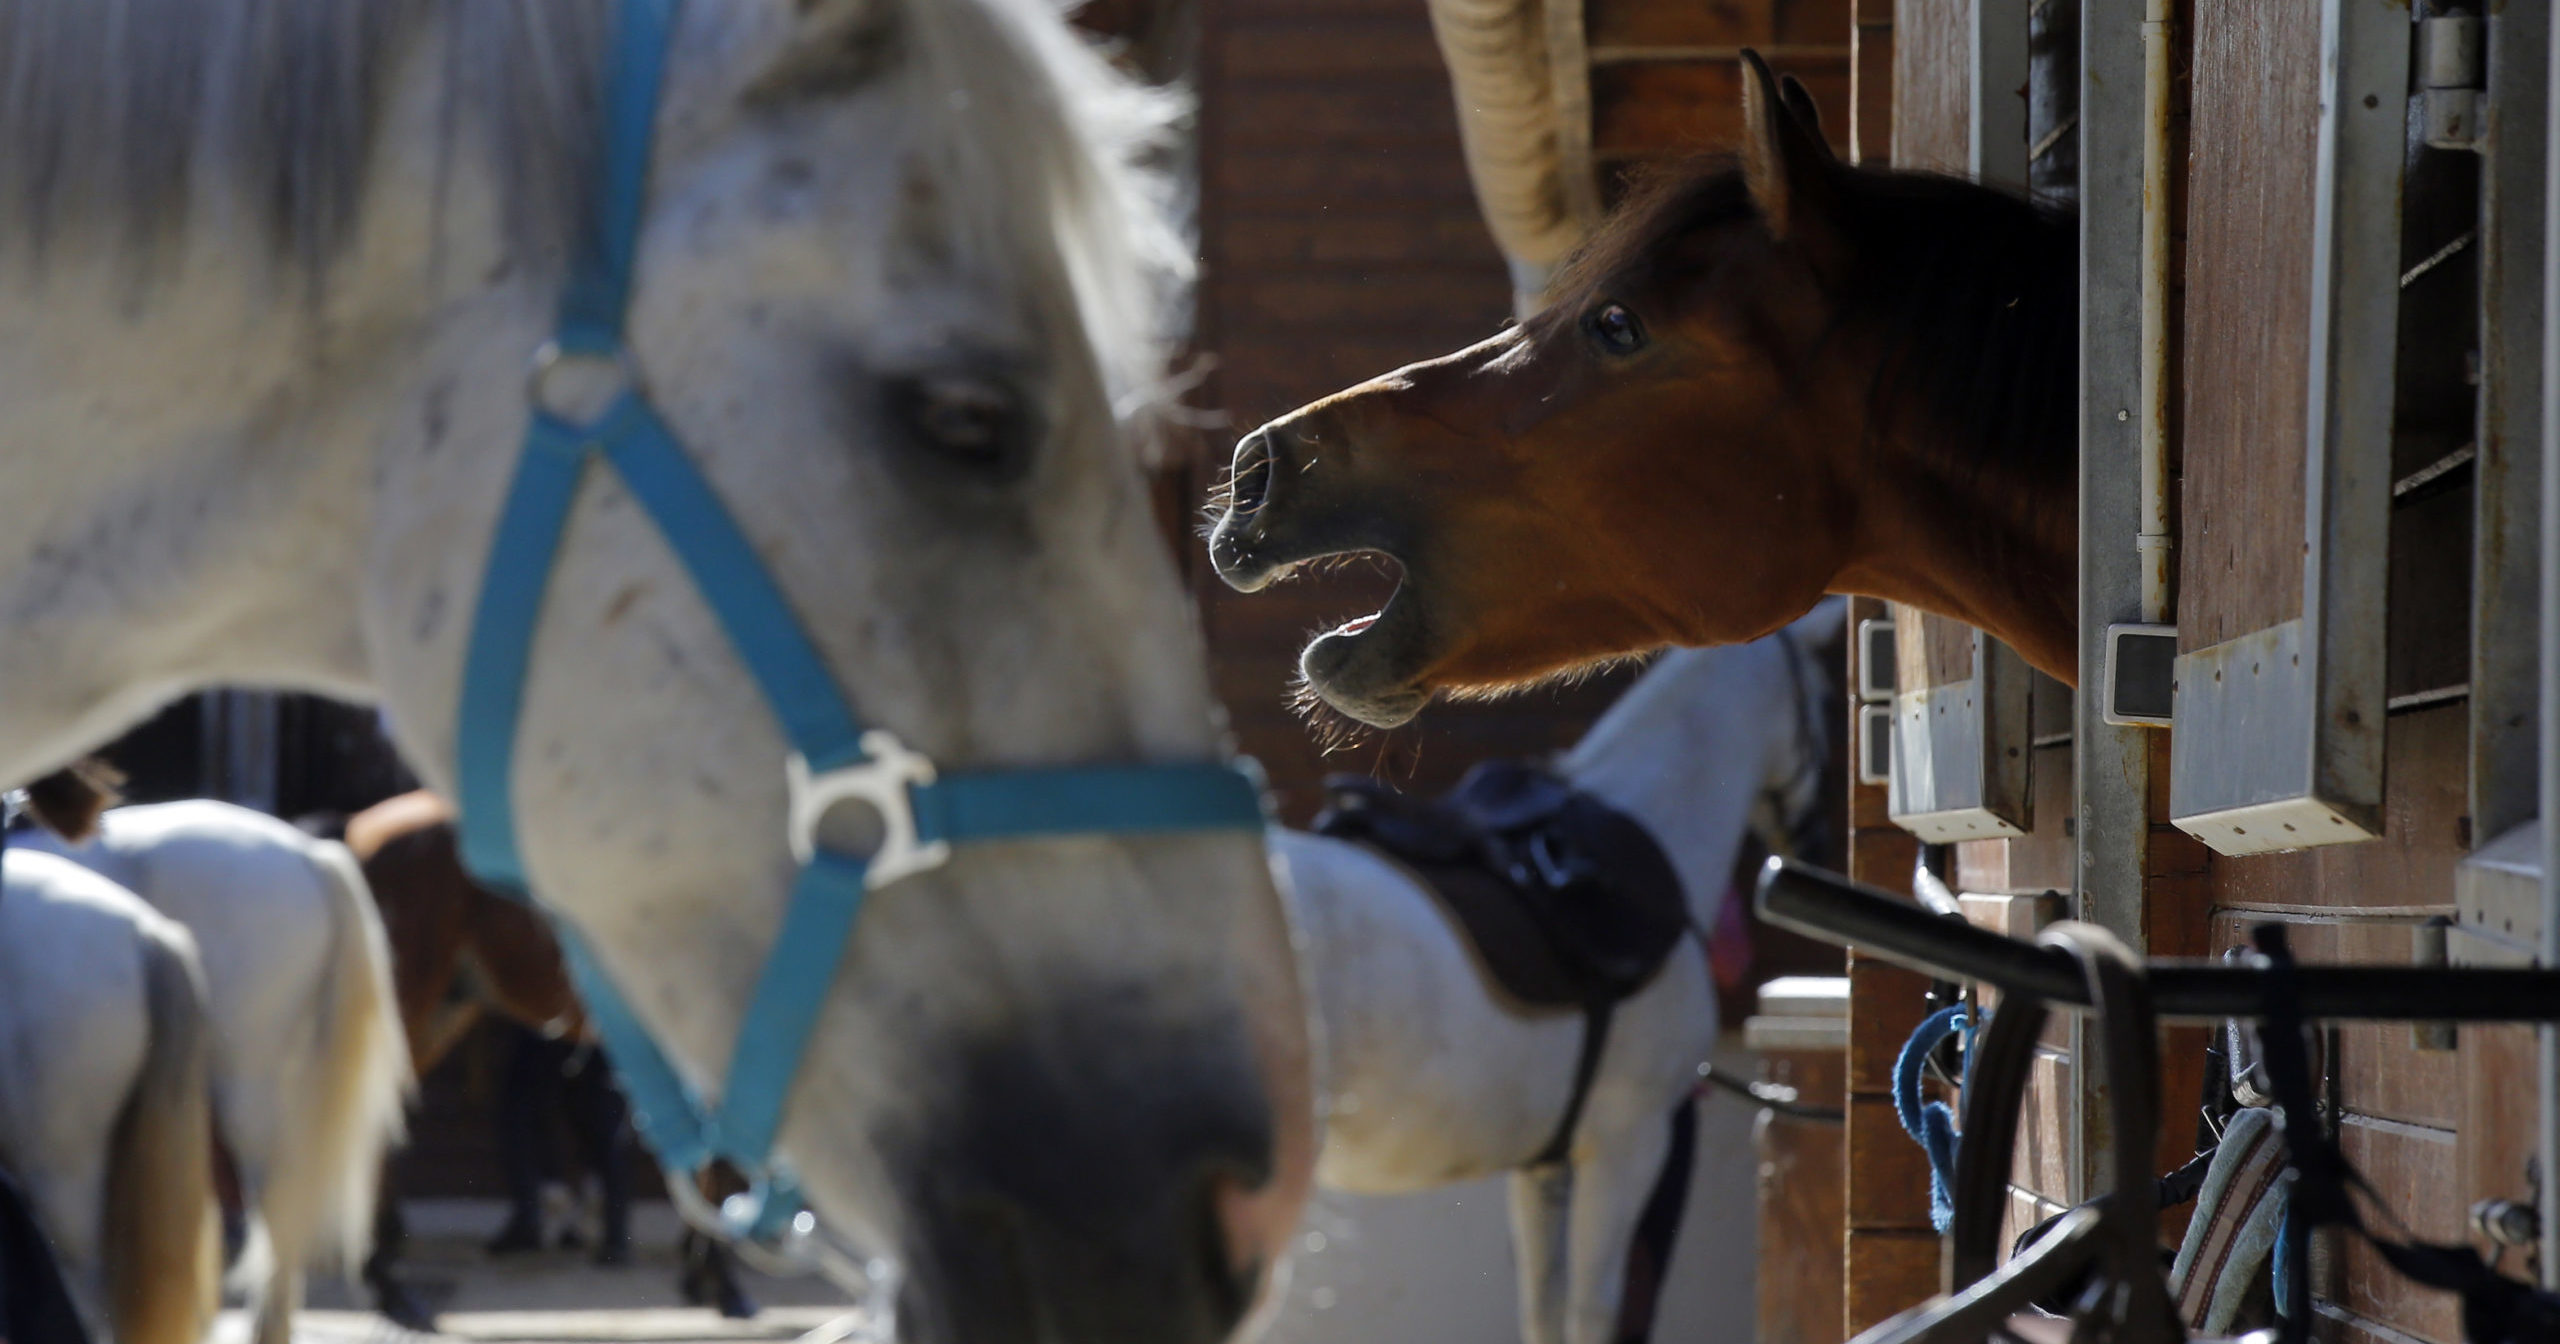 Horses stand in a box at an equestrian club in Les Yvelines, west of Paris, on Aug. 28, 2020. Attackers are going after horses and ponies in pastures across France in what may be ritual mutilations.